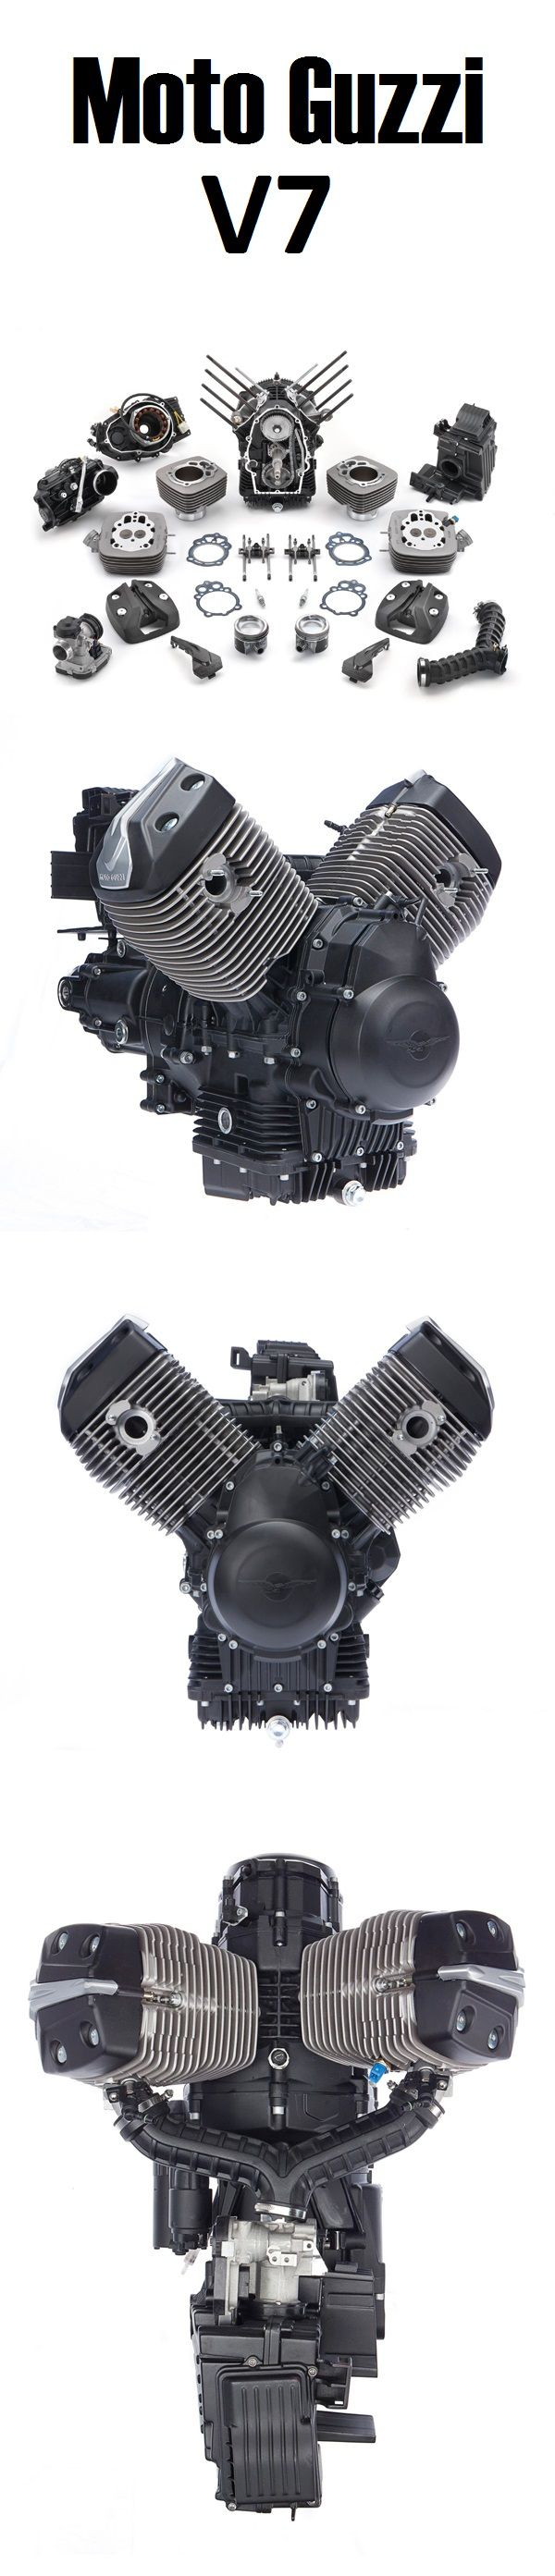 Moto Guzzi V7 Engine                                                                                                                                                                                 More